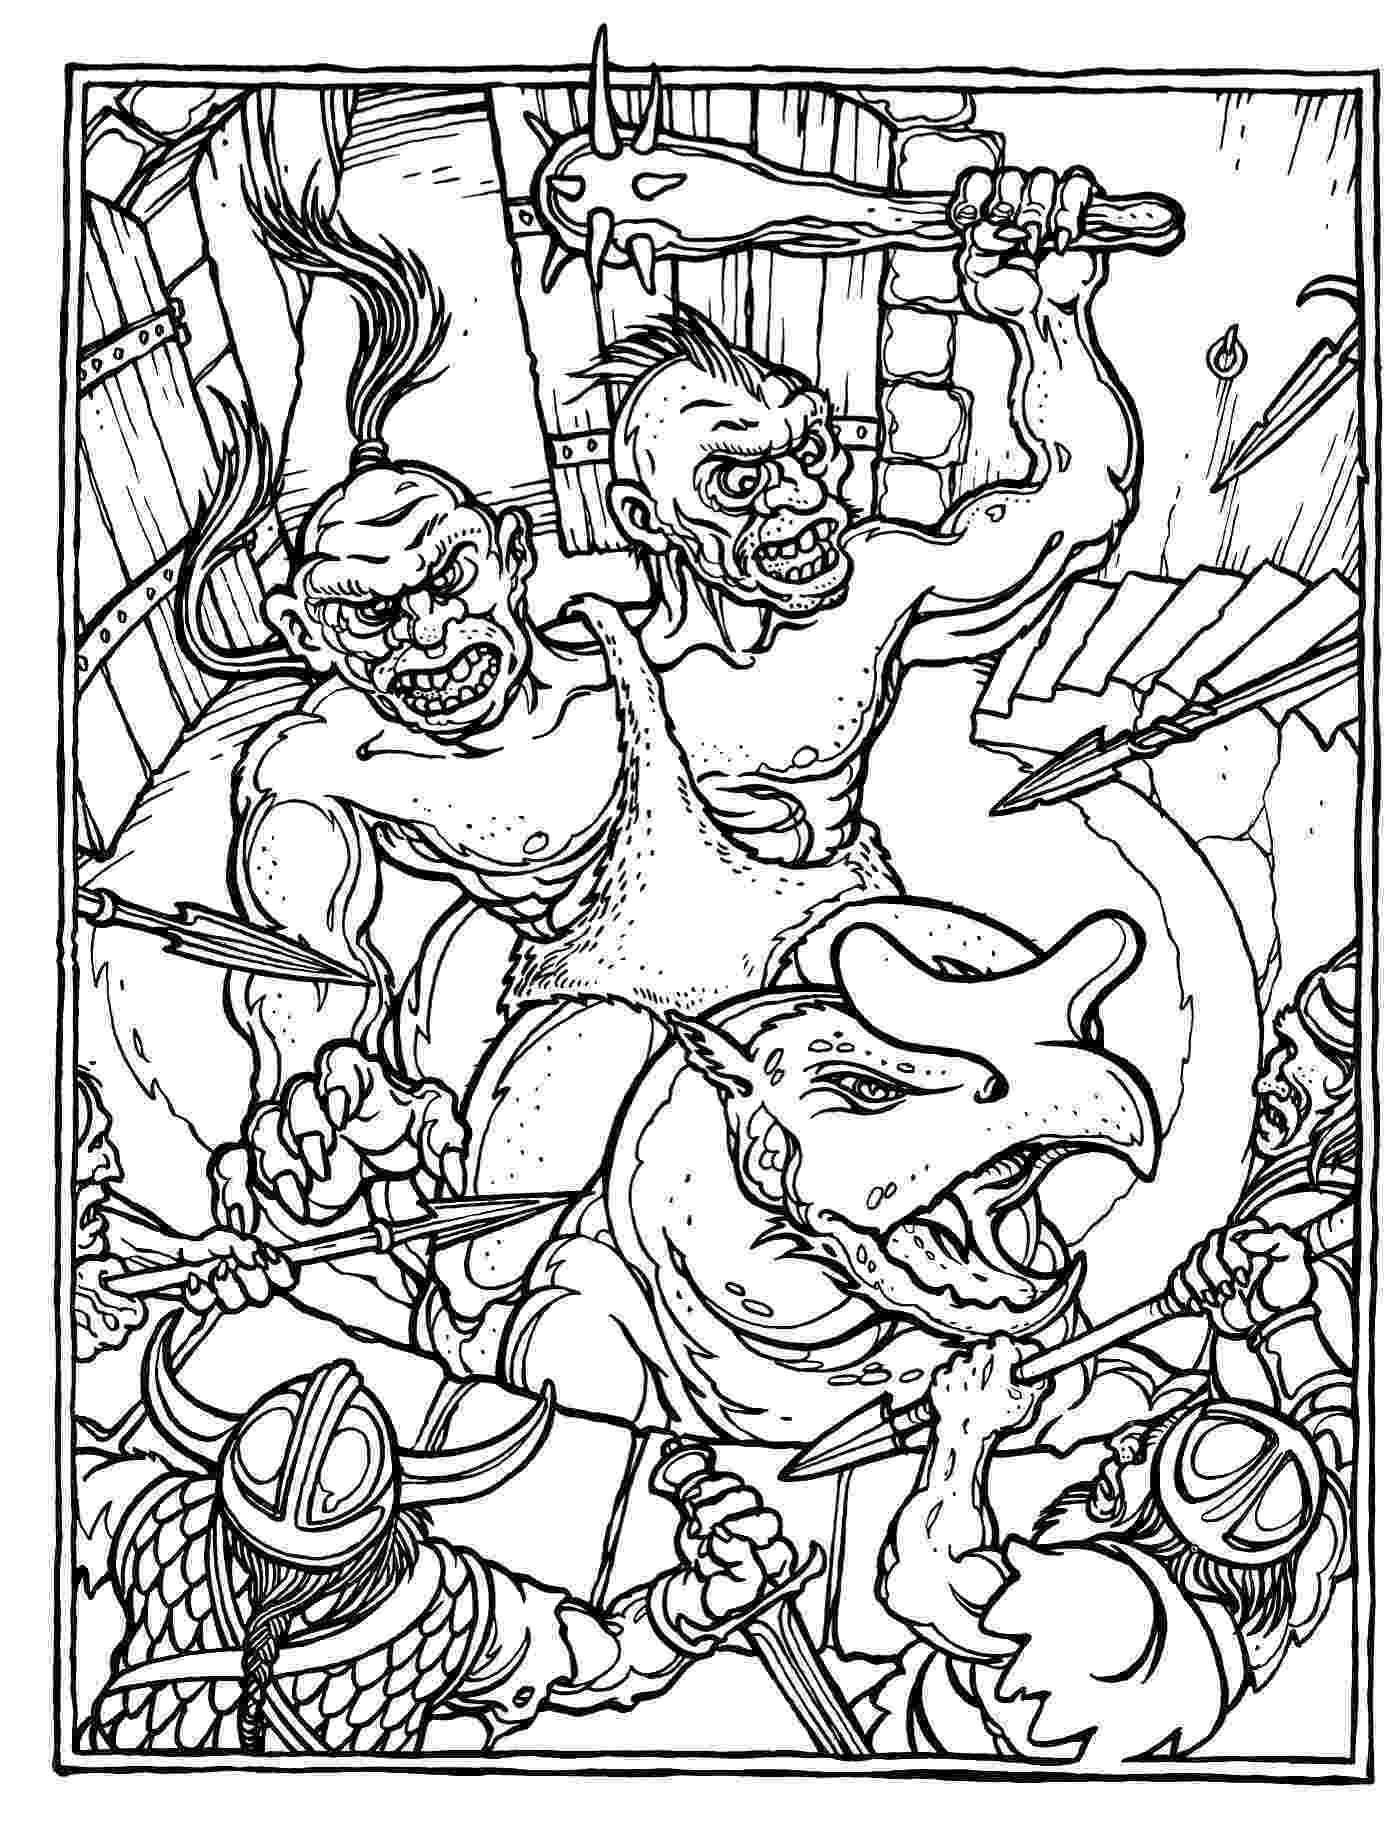 dragon coloring pages pdf monster brains the official advanced dungeons and dragons pages coloring dragon pdf